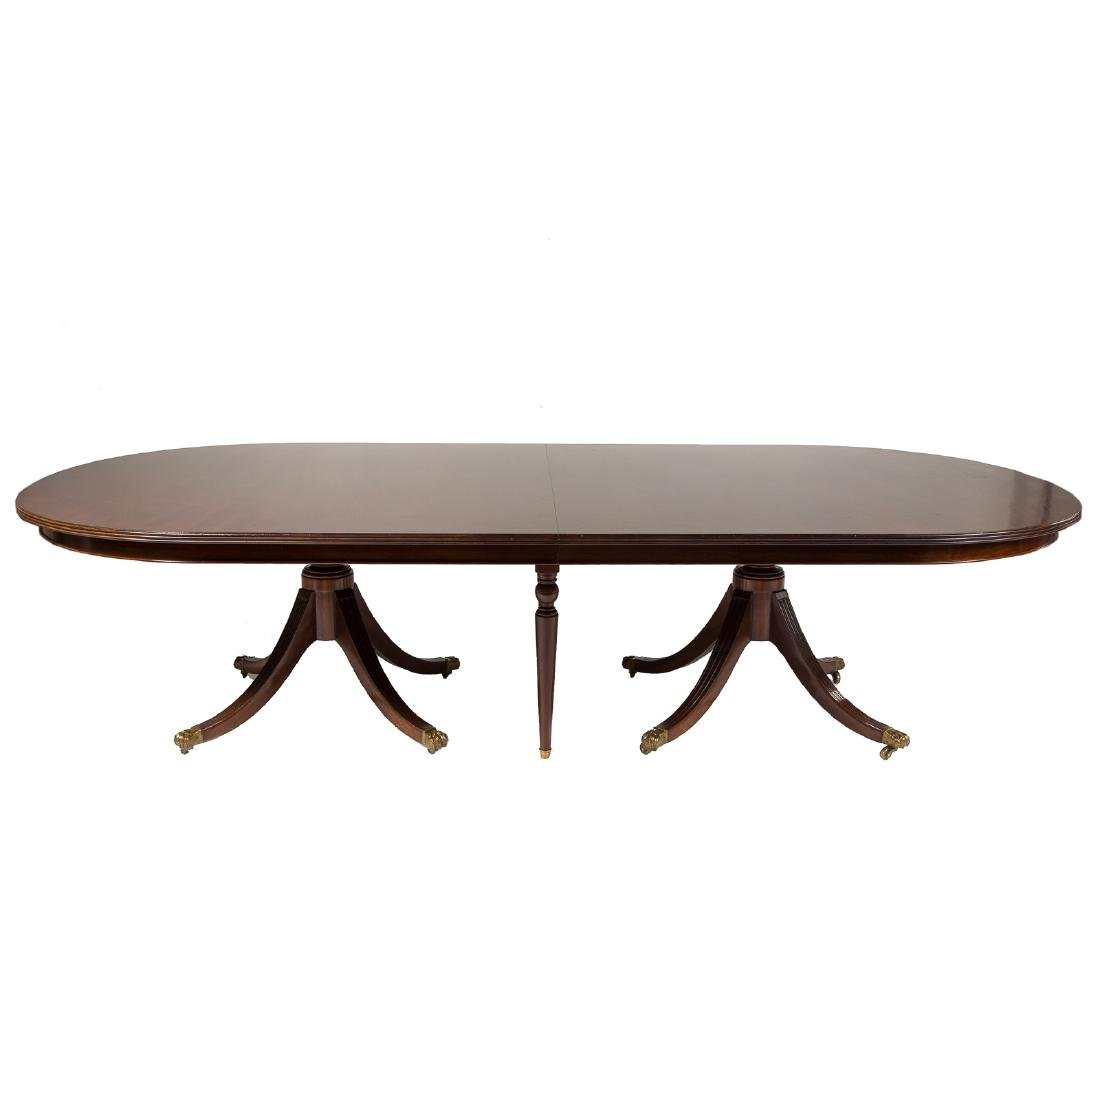 George III style mahogany dining table